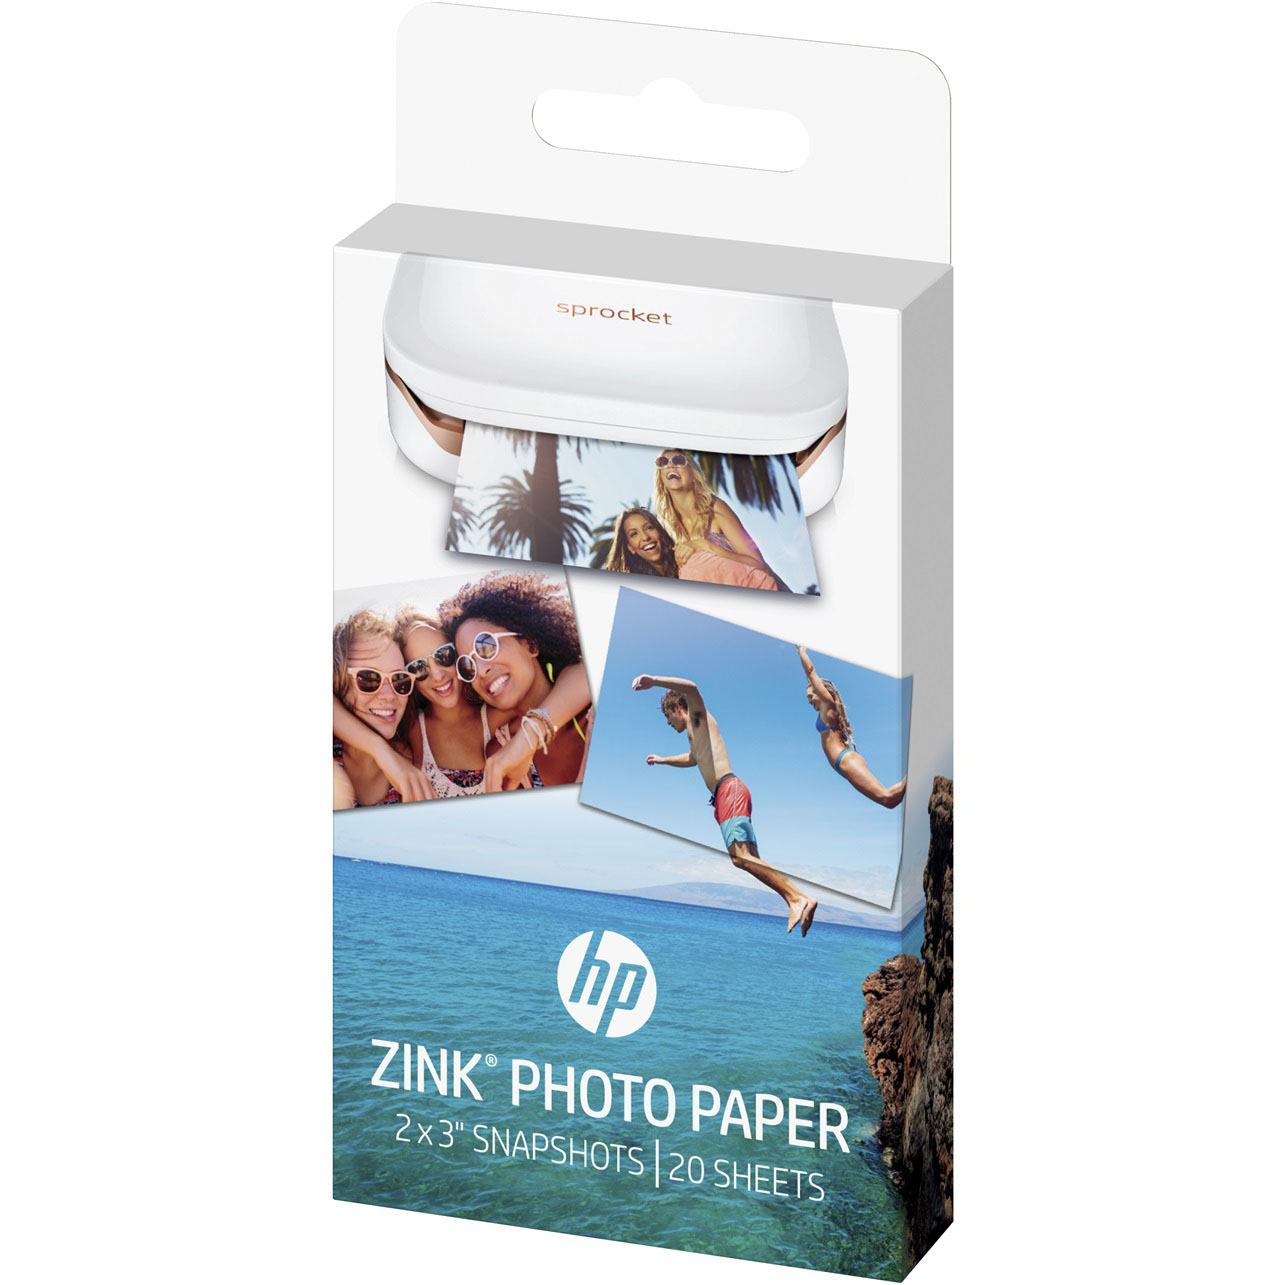 "HP Sprocket Zink Photo Paper 2 x 3"" 20 Pack 